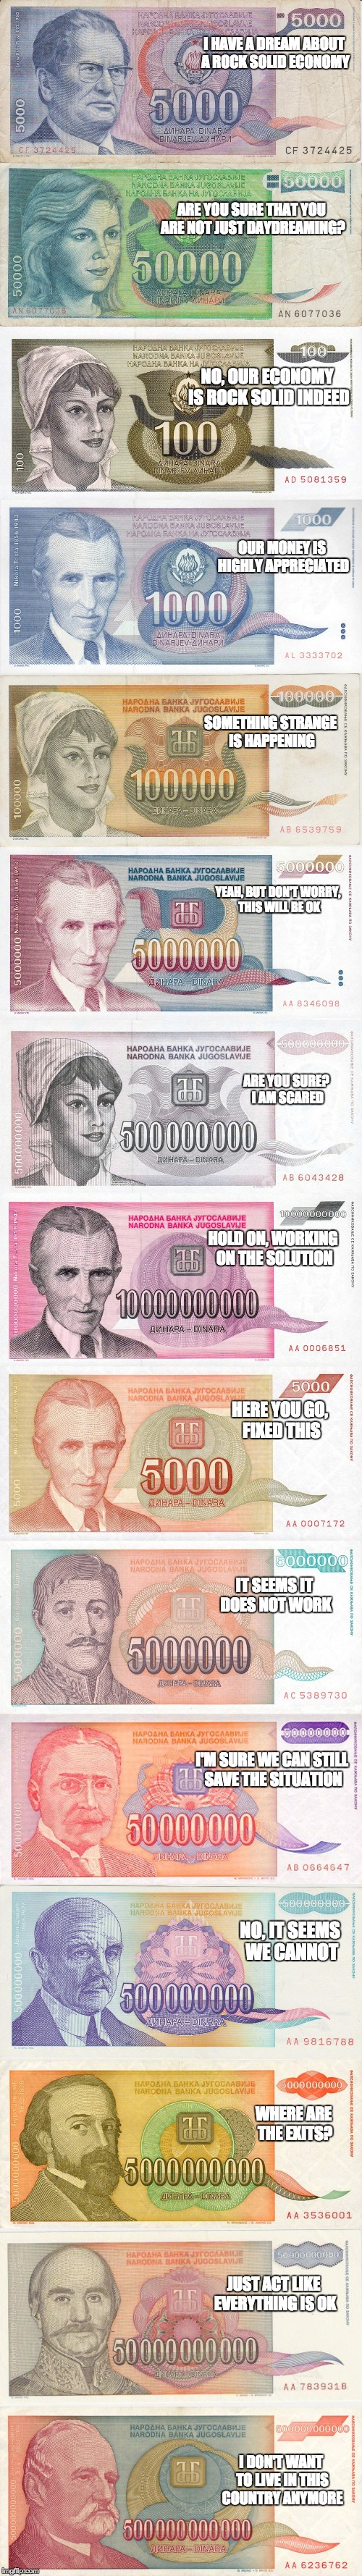 Hyperinflation, baby...